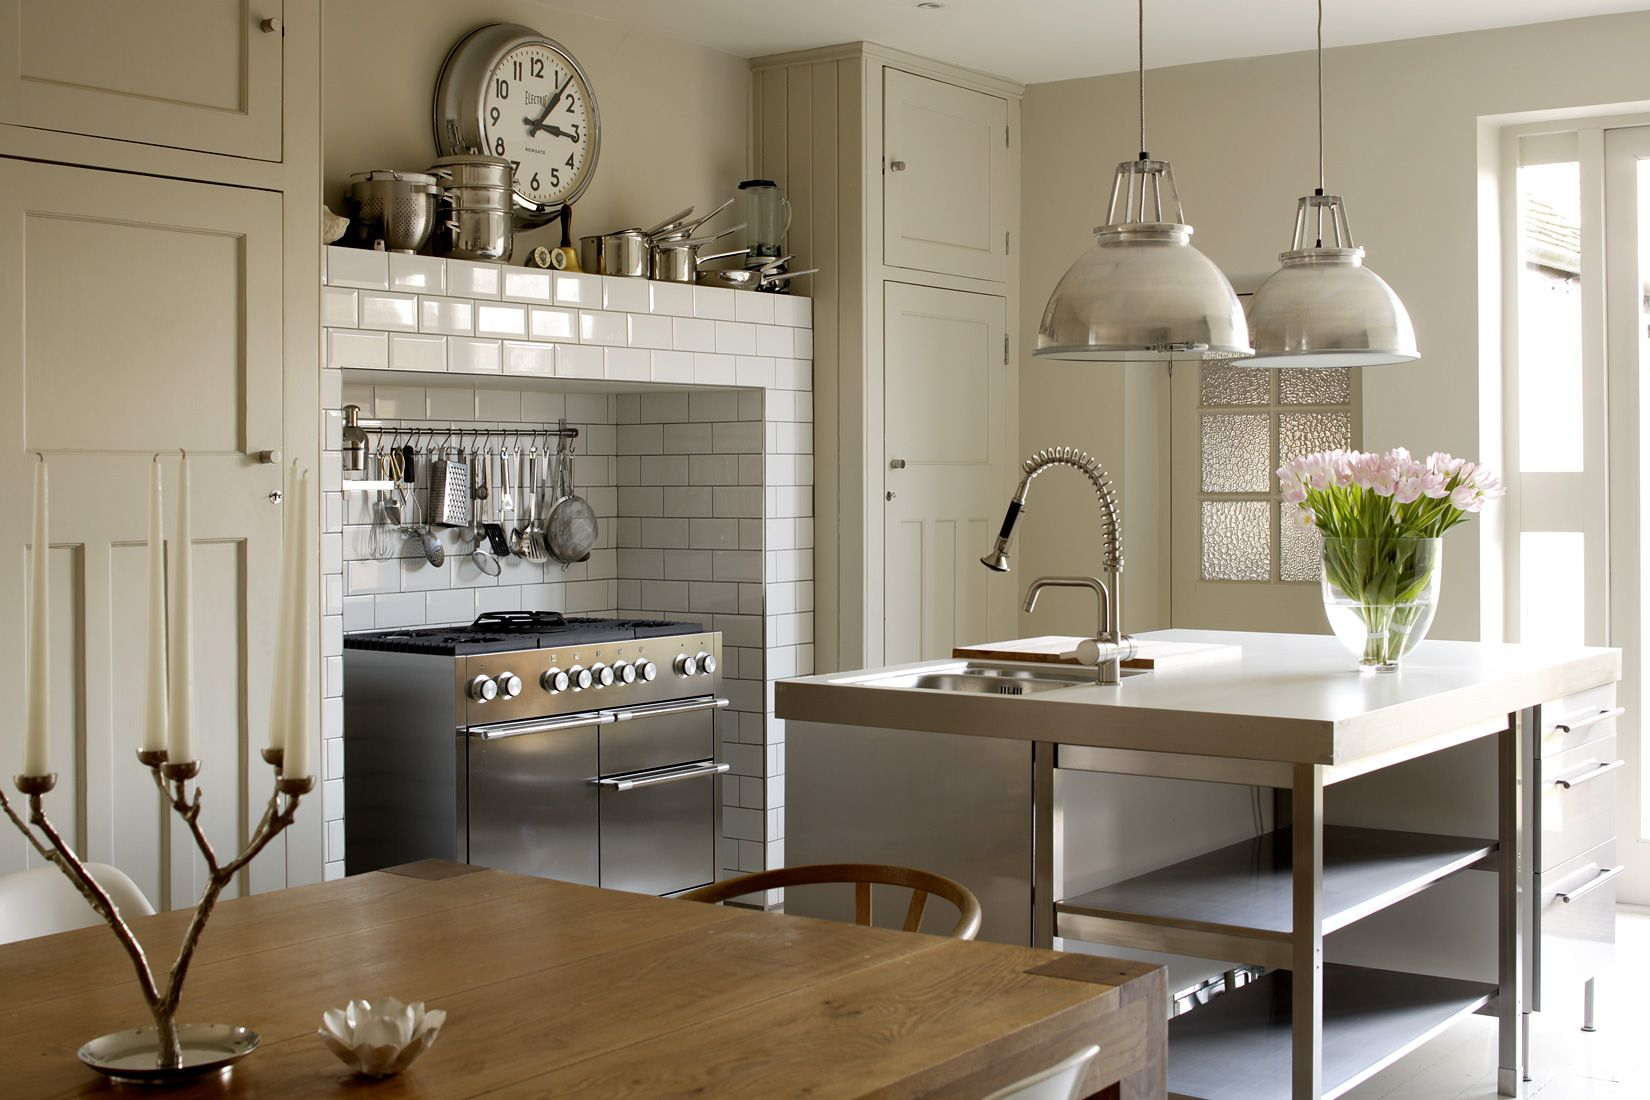 Ikea Küchensockel 1st Option 404 | Kitchen Design, Greige Kitchen, Rustic Modern Kitchen